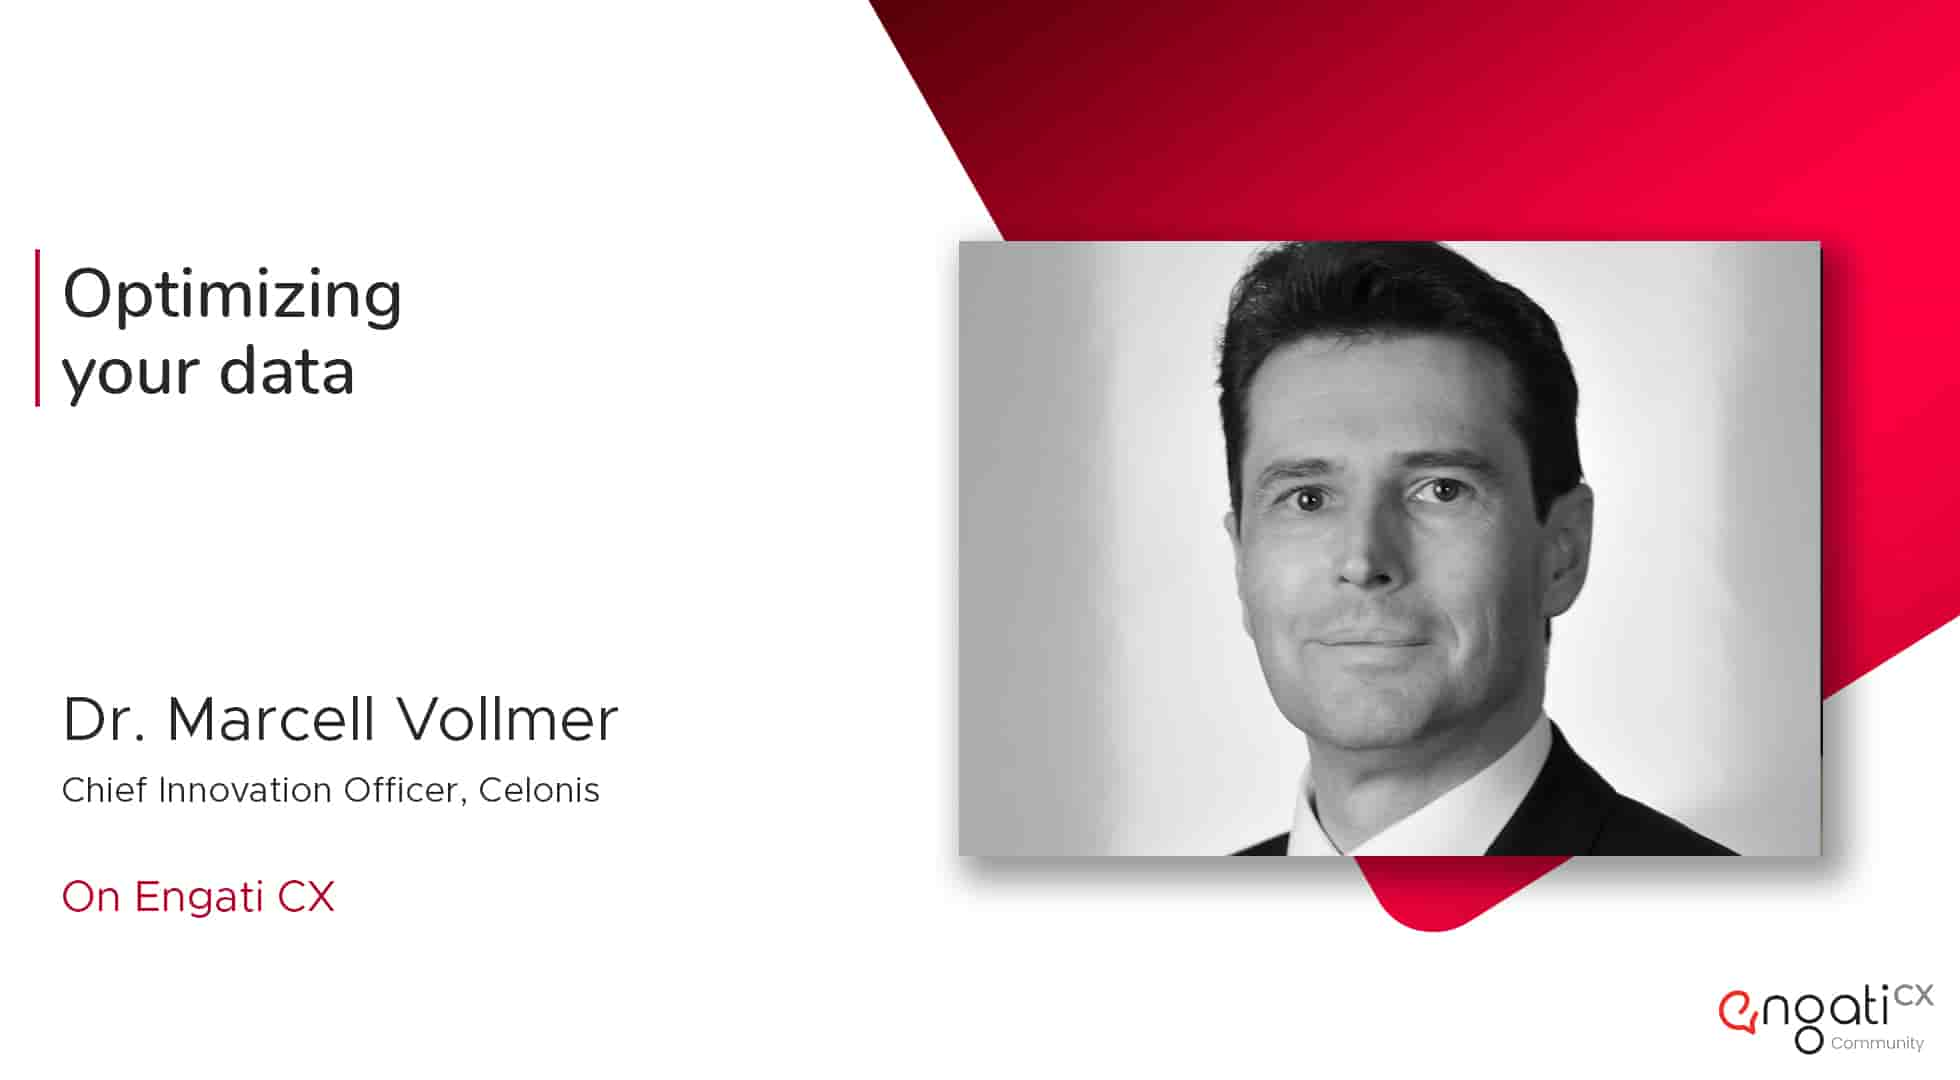 Enterprise performance acceleration | Dr. Marcell Vollmer